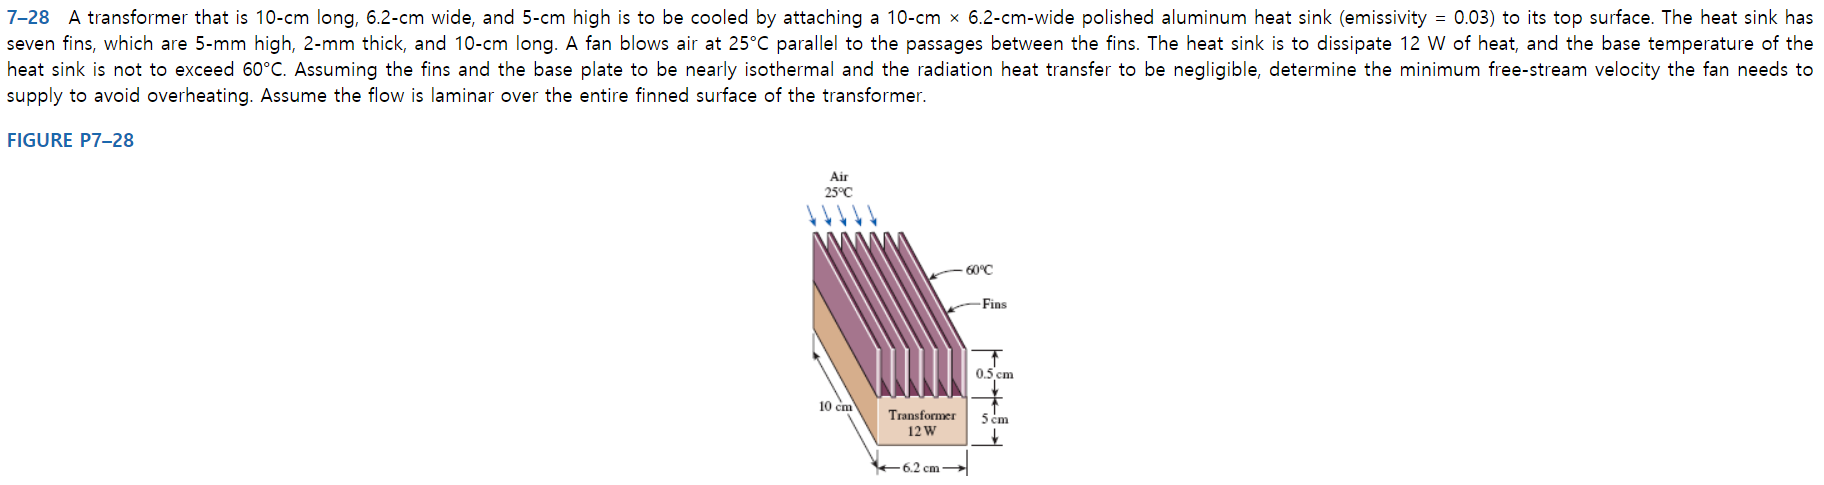 7-28 A transformer that is 10-cm long, 6.2-cm wide, and 5-cm high is to be cooled by attaching a 10-cm x 6.2-cm-wide polished aluminum heat sink (emissivity = 0.03) to its top surface. The heat sink has seven fins, which are 5-mm high, 2-mm thick, and 10-cm long. A fan blows air at 25°C parallel to the passages between the fins. The heat sink heat sink is not to exceed 60°C. Assuming the fins and the base plate to be nearly isothermal and the radiation heat transfer to be negligible, determine the minimum free-stream velocity the fan needs to supply to avoid overheating. Assume the flow is laminar over the entire finned surface of the transformer. to dissipate 12 W of heat, and the base temperature of the FIGURE P7-28 Air 25°C 60°C -Fins 0.5 cm 10 cm Transformer 5 cm 12 W +6.2 cm -